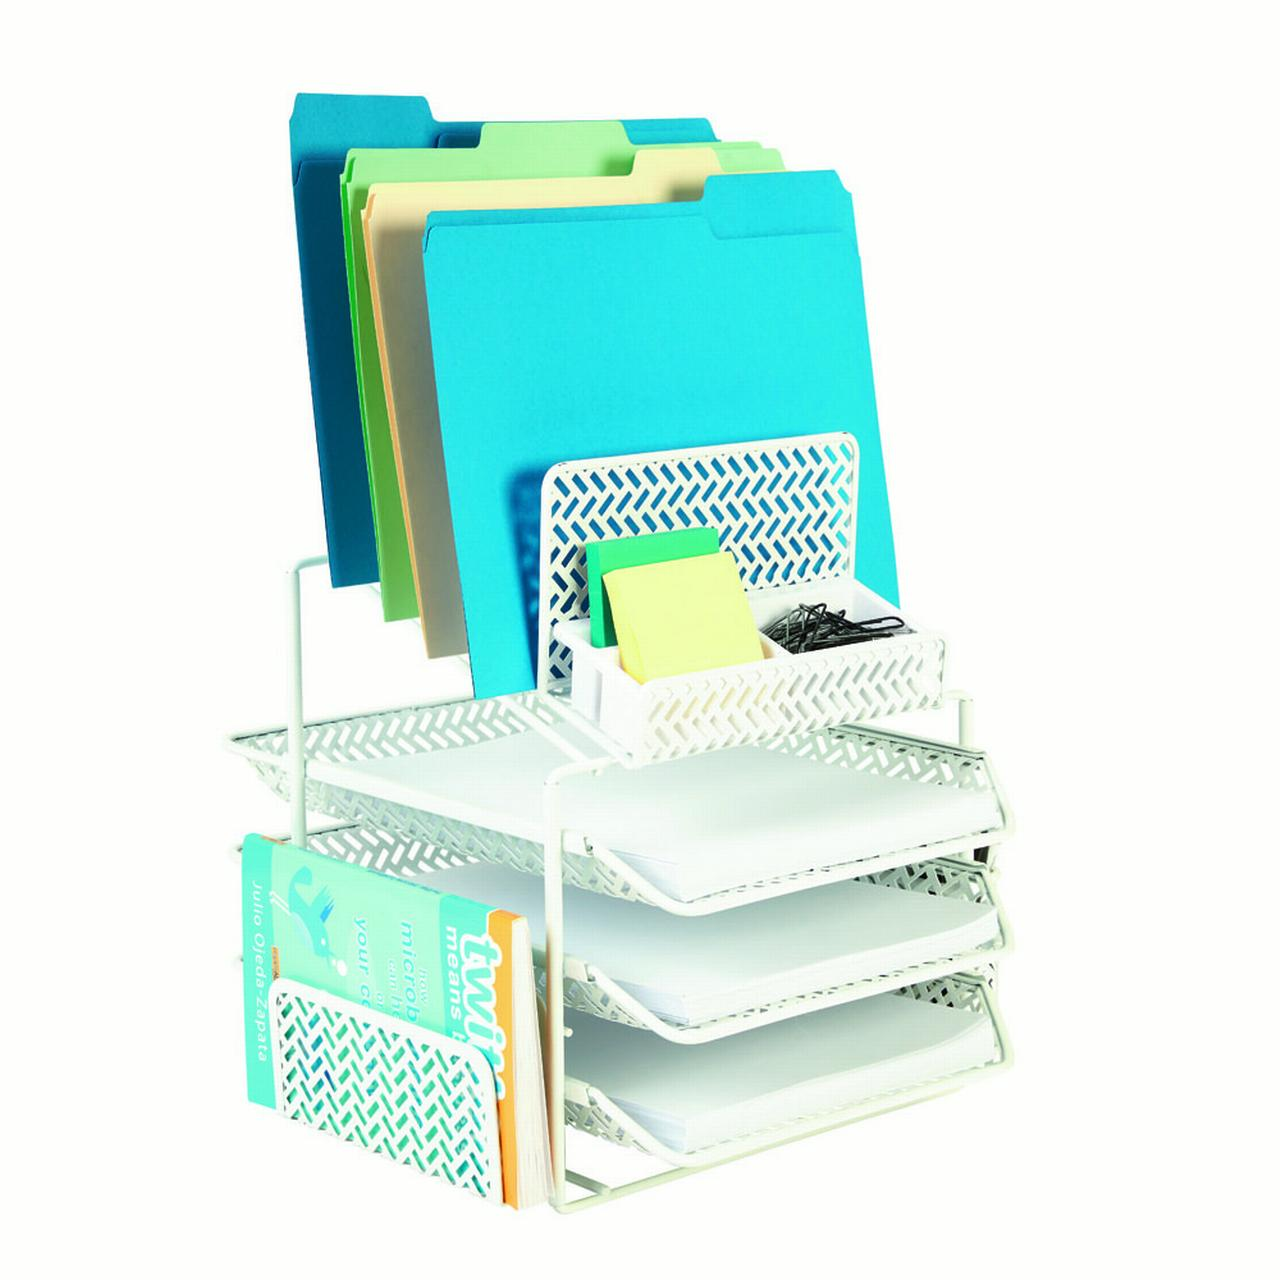 Staples All In One White Zigzag Desk Organizer